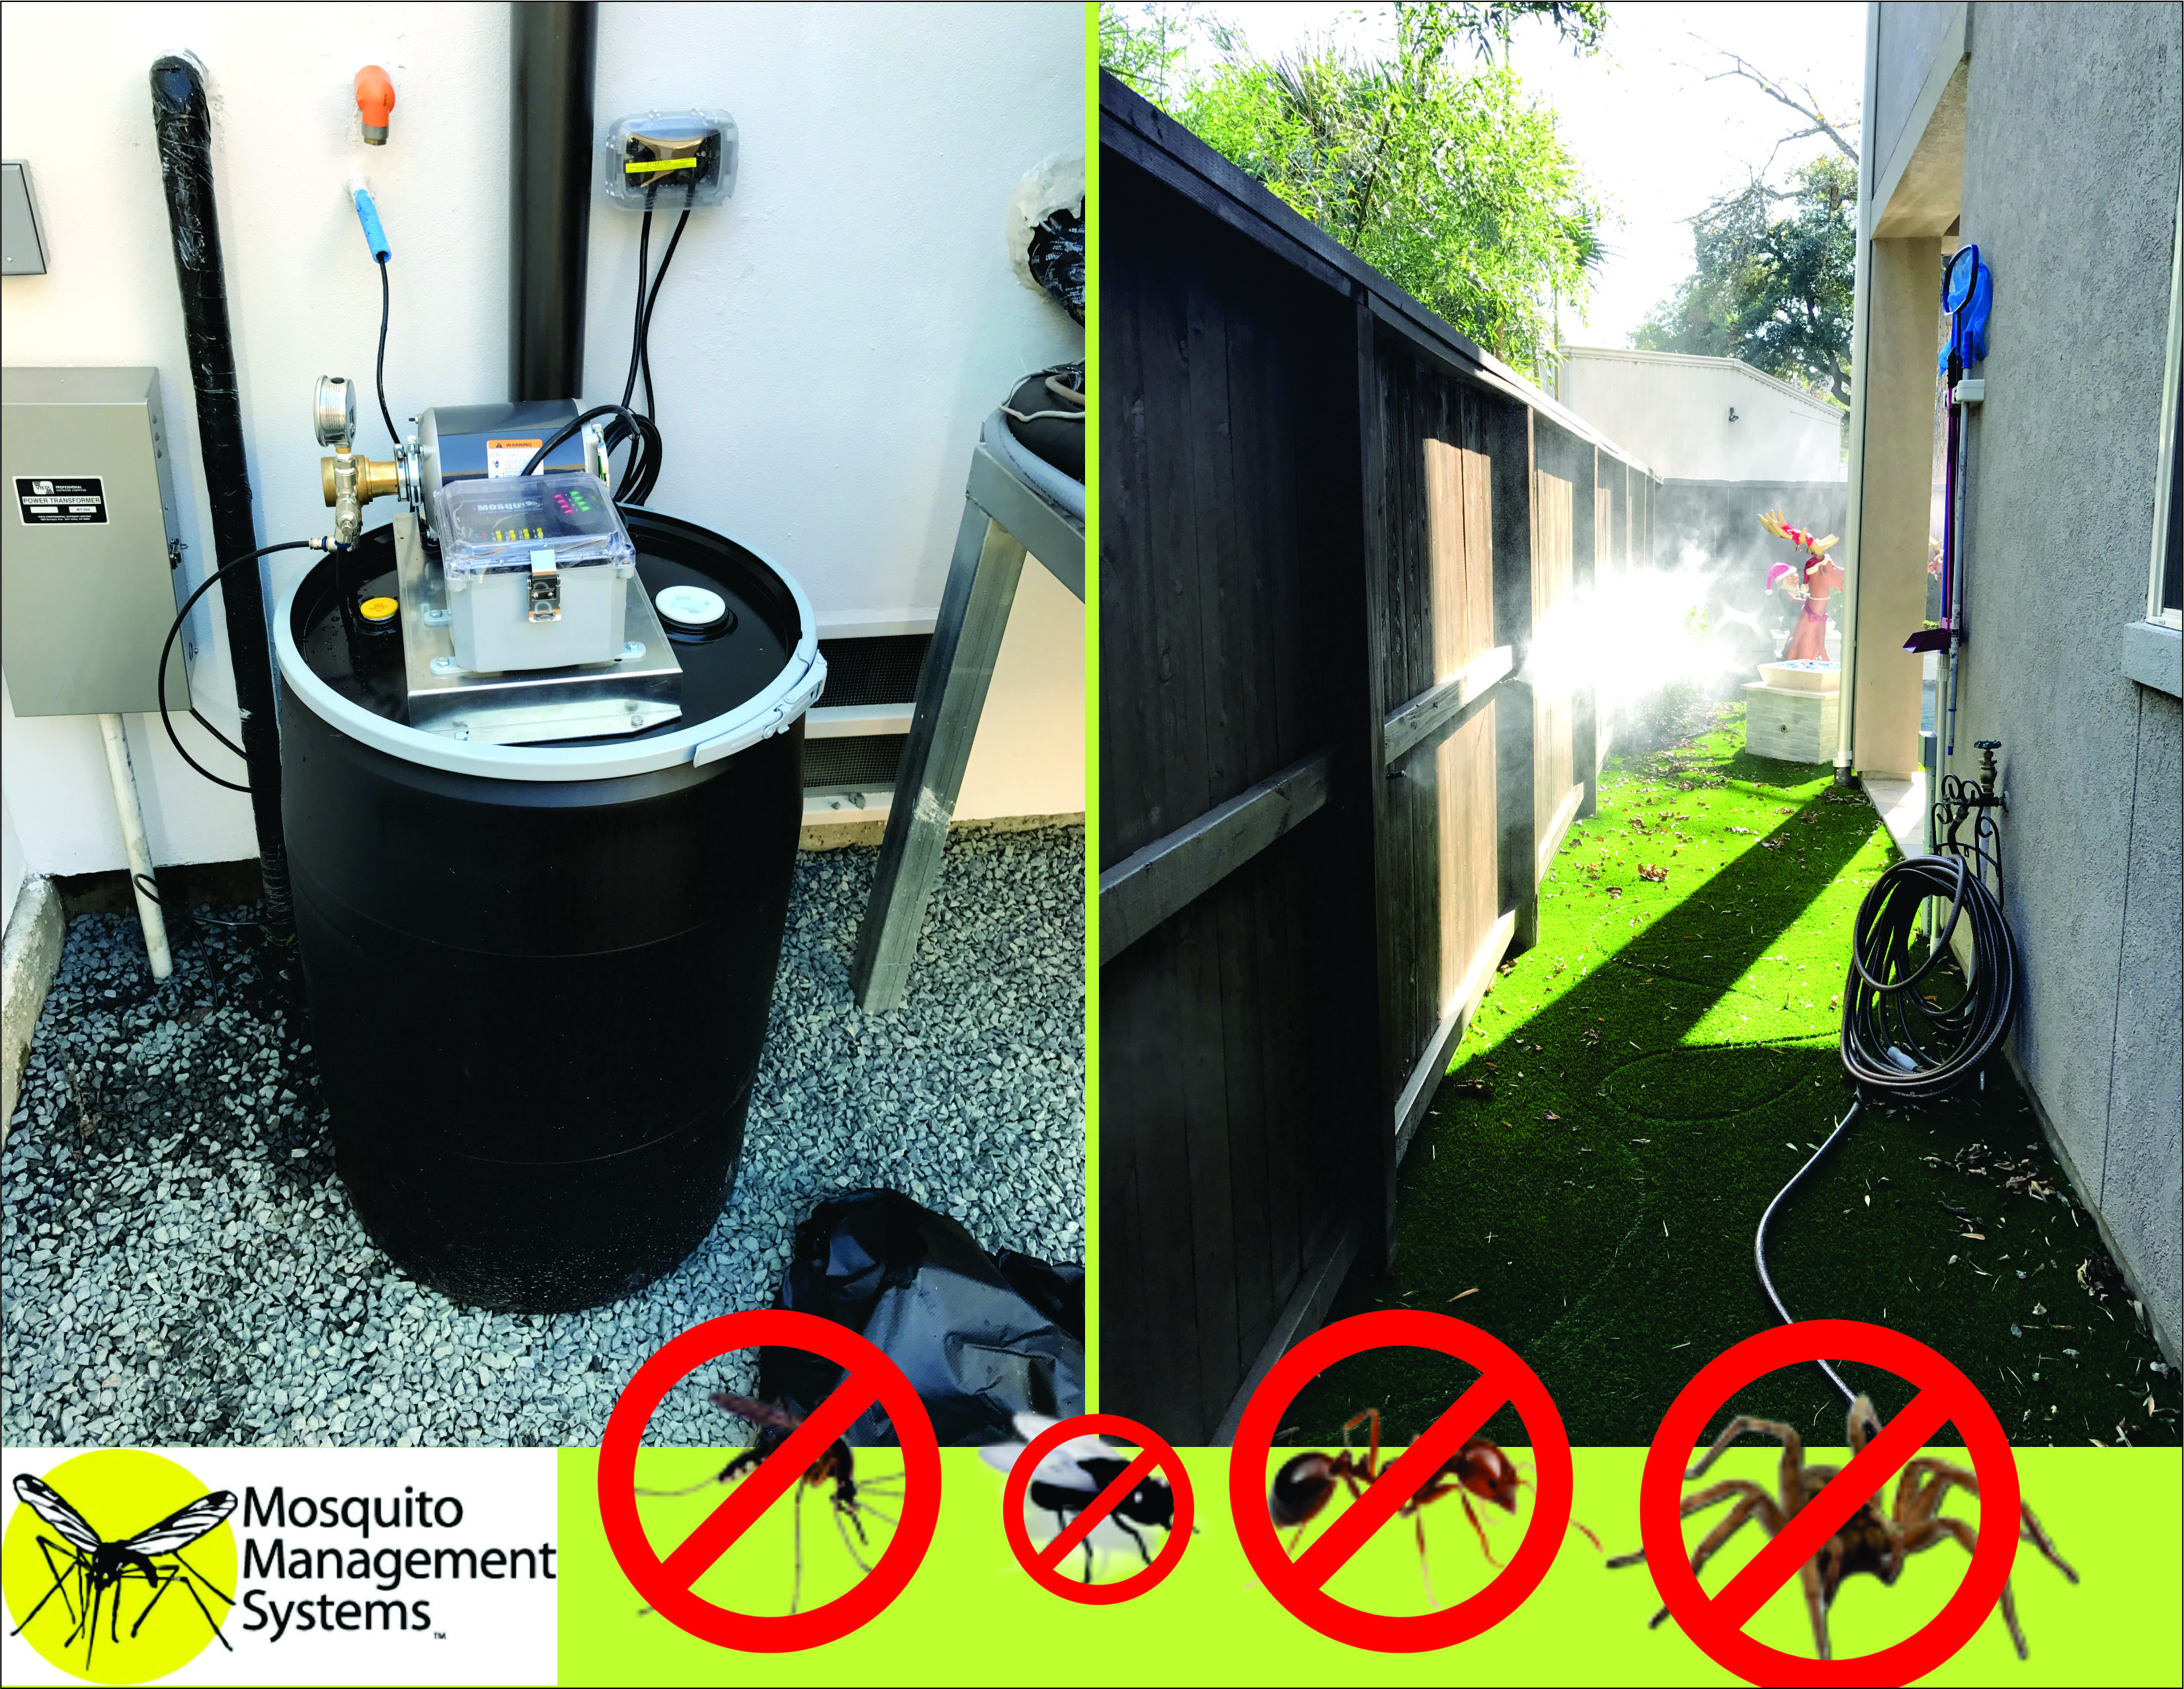 the mosquito pro insect misting system is perfect for around the